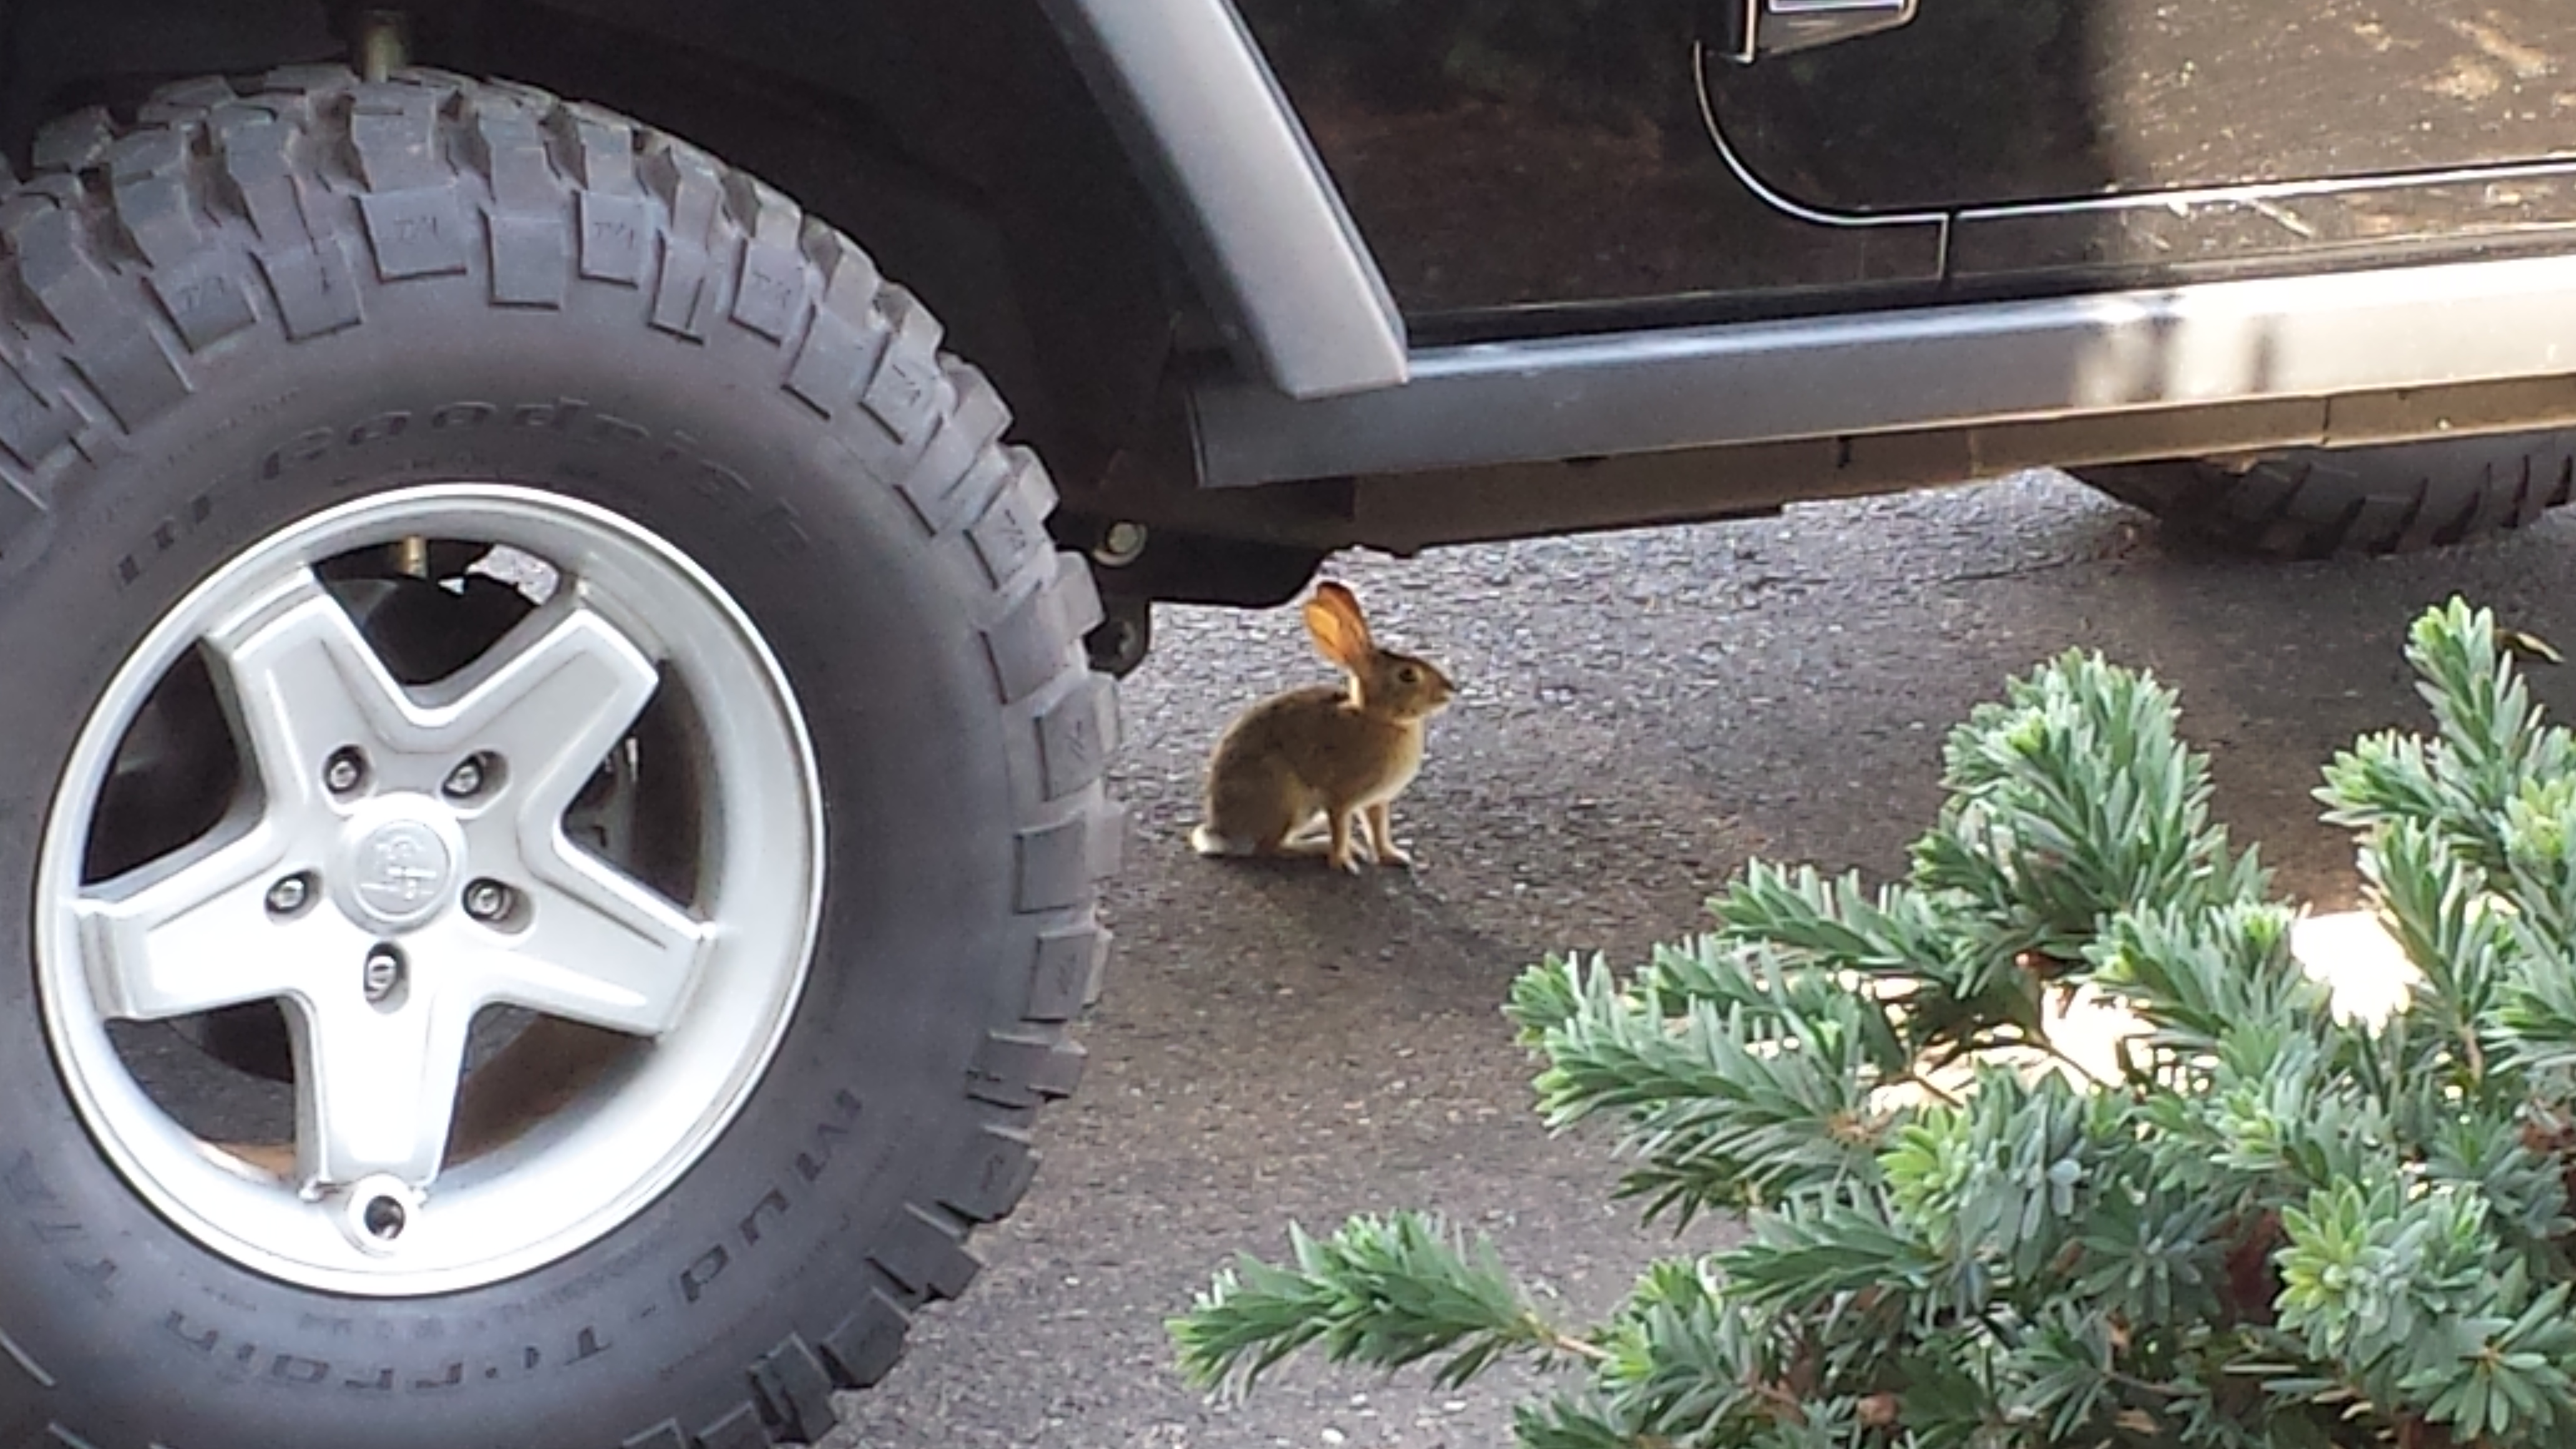 A new acquaintance takes a respite in the shade and safety of my Jeep.